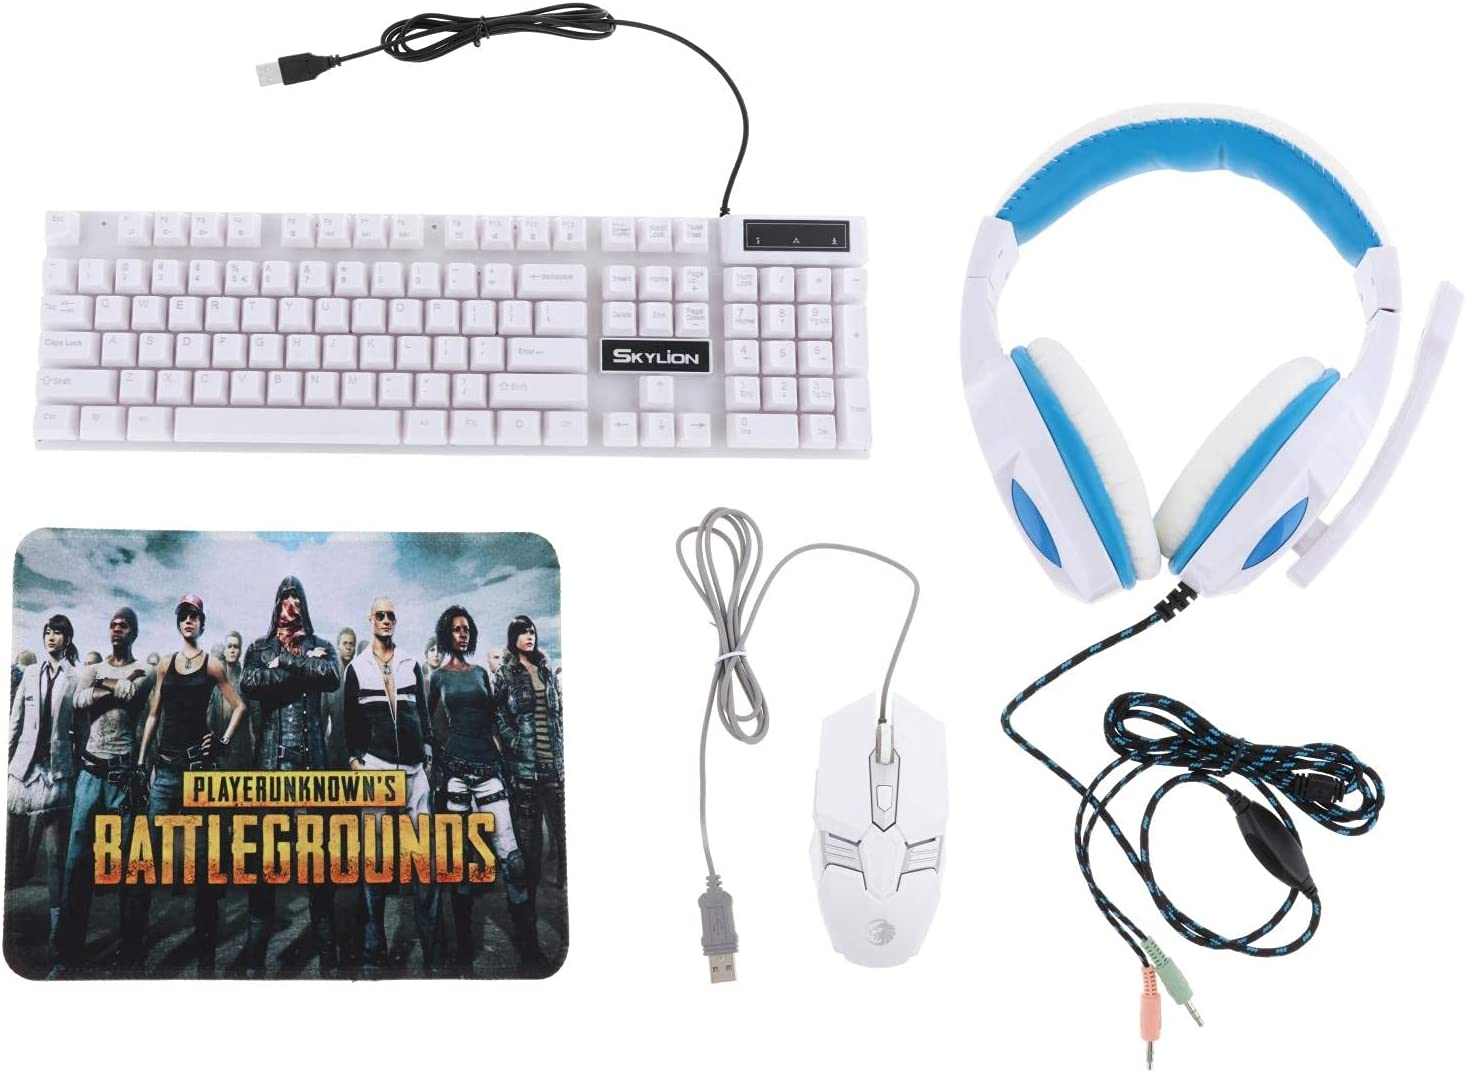 Kesoto Gaming Keyboard Mouse Headset & Mouse Pad Kit,Programmable Mouse, Wired USB Keyboards,Gaming Keyboard Combo, for Computer Desktop Gamer - White